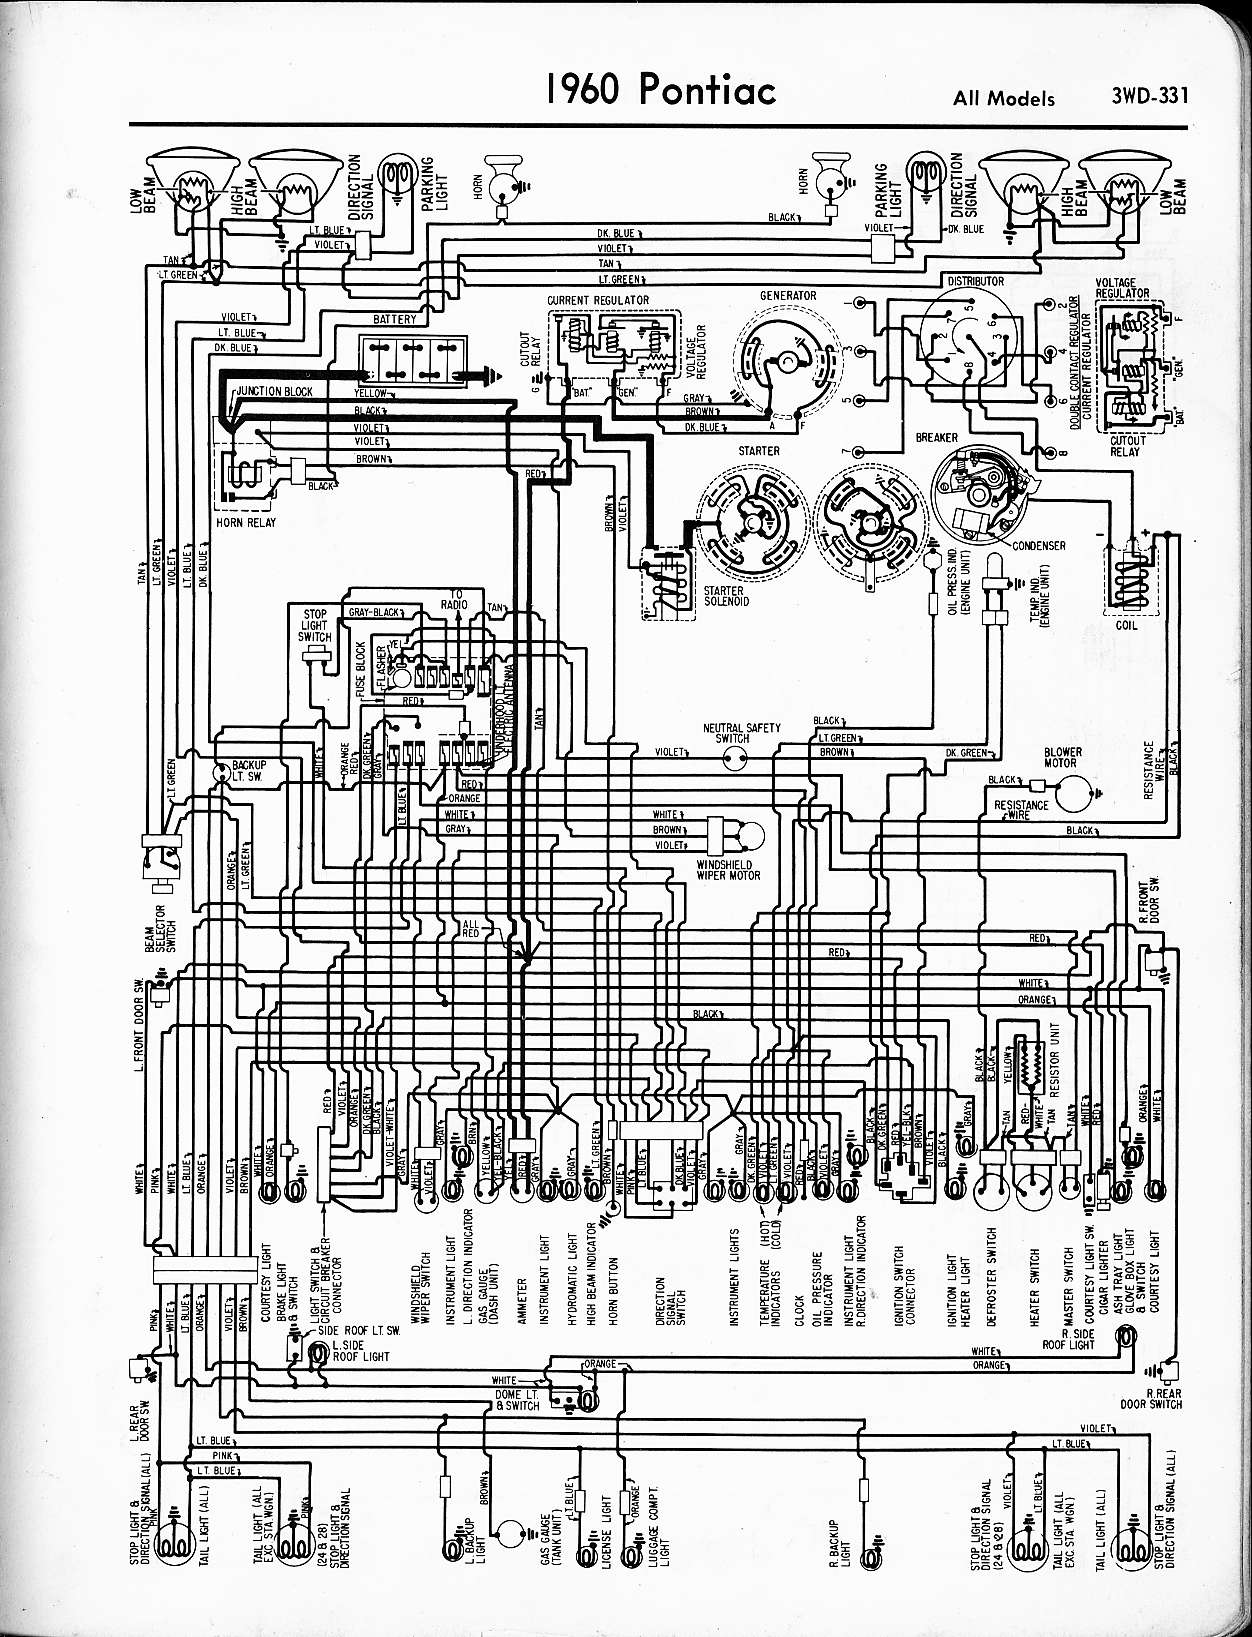 1966 pontiac wiring diagram detailed schematics diagram rh lelandlutheran  com 68 GTO Dash Wiring Diagram 1965